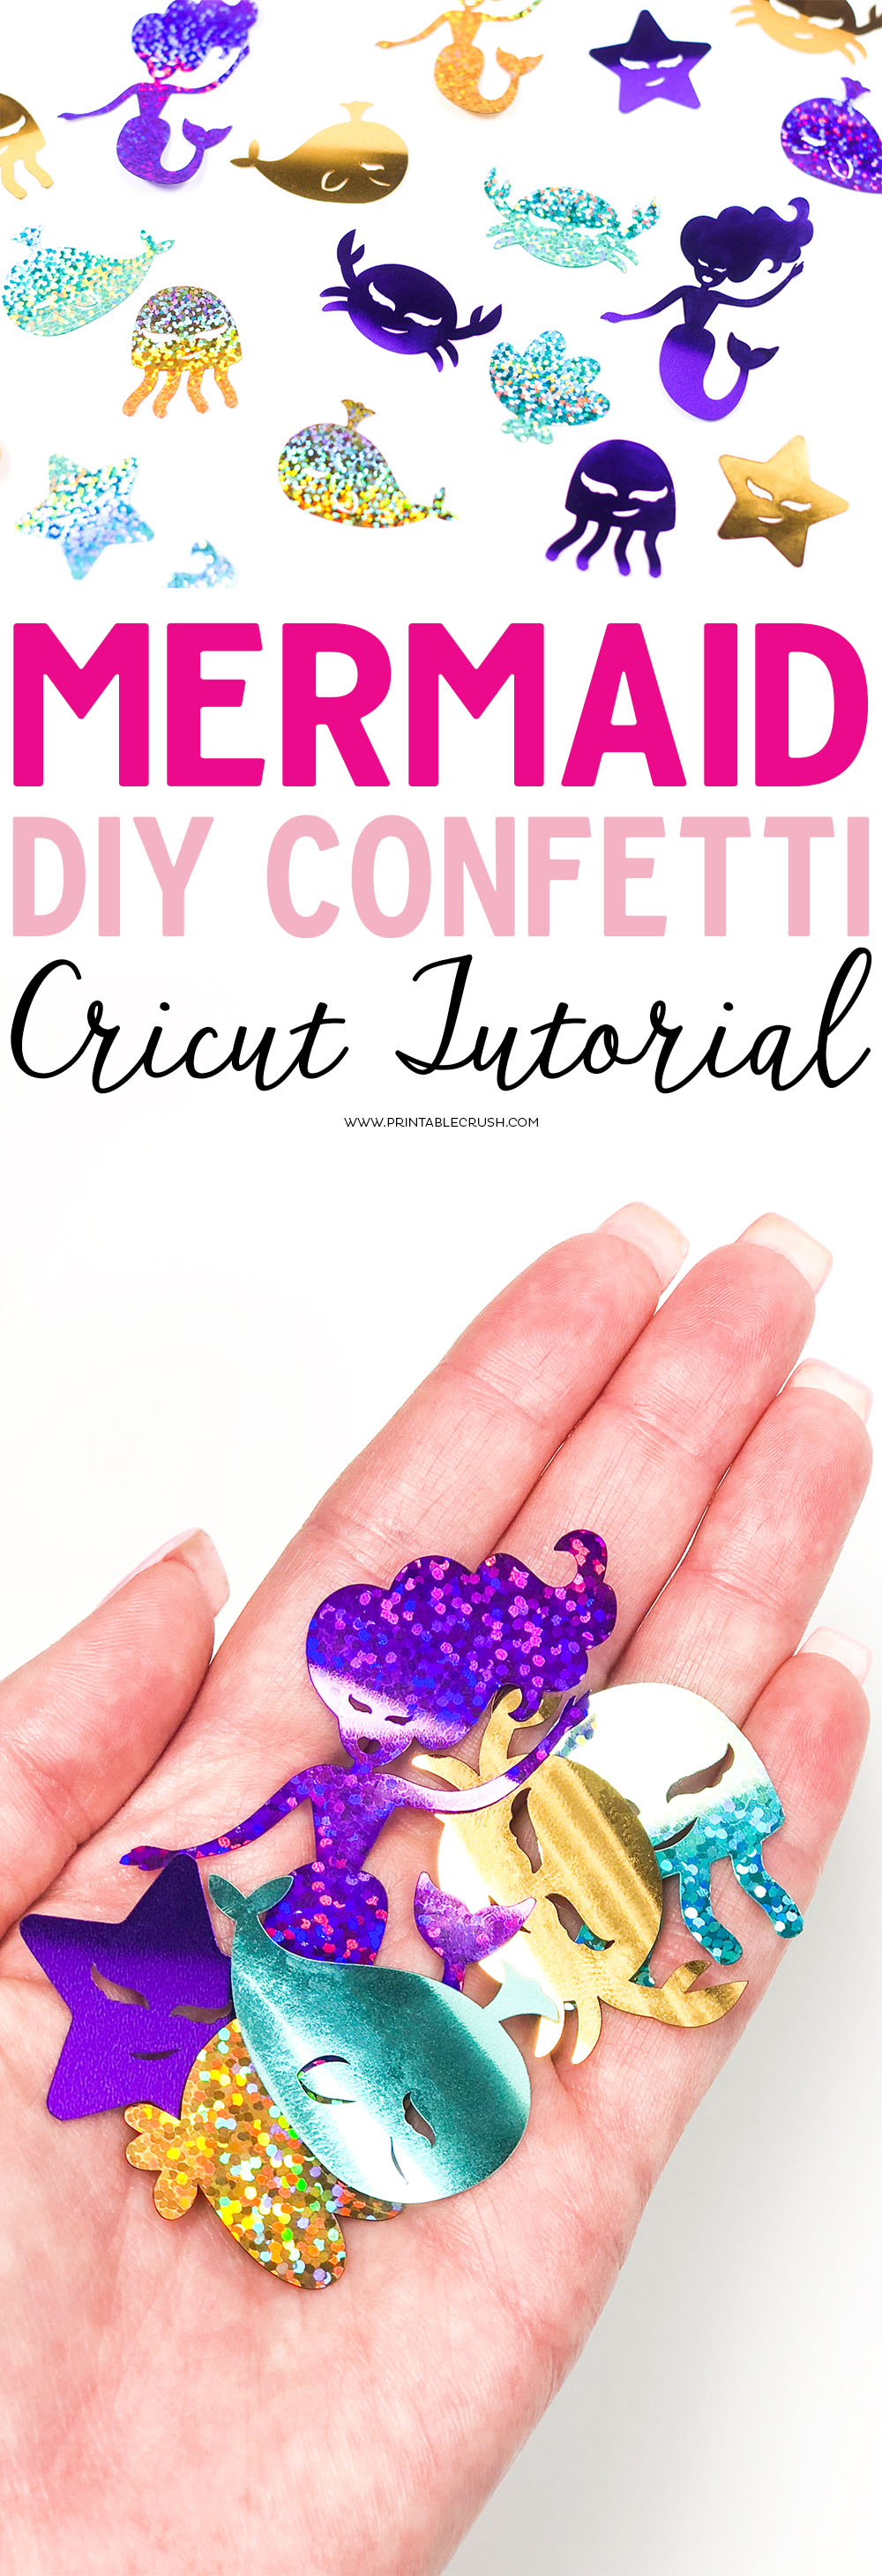 This fun DIY Mermaid Confetti Cricut Tutorial is so cute and perfect for a Mermaid party! It's so easy to make with the Cricut Maker and Cricut Party Foil!